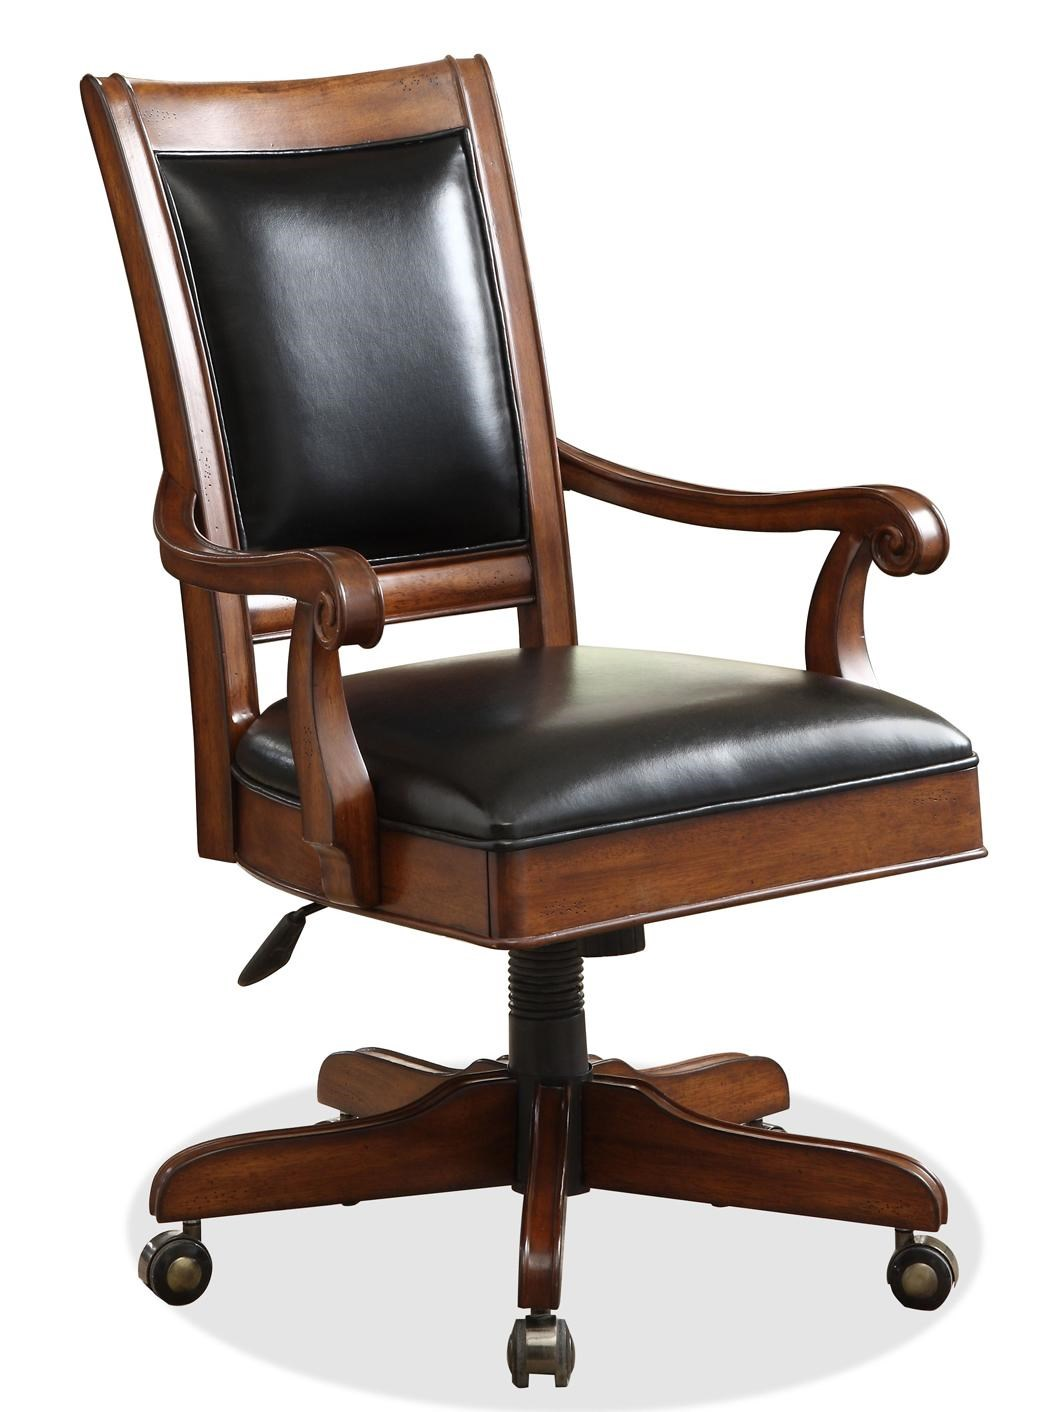 wooden leather desk chair covers canada wholesale riverside furniture bristol court 24538 caster equipped with covered seat dunk bright office task chairs